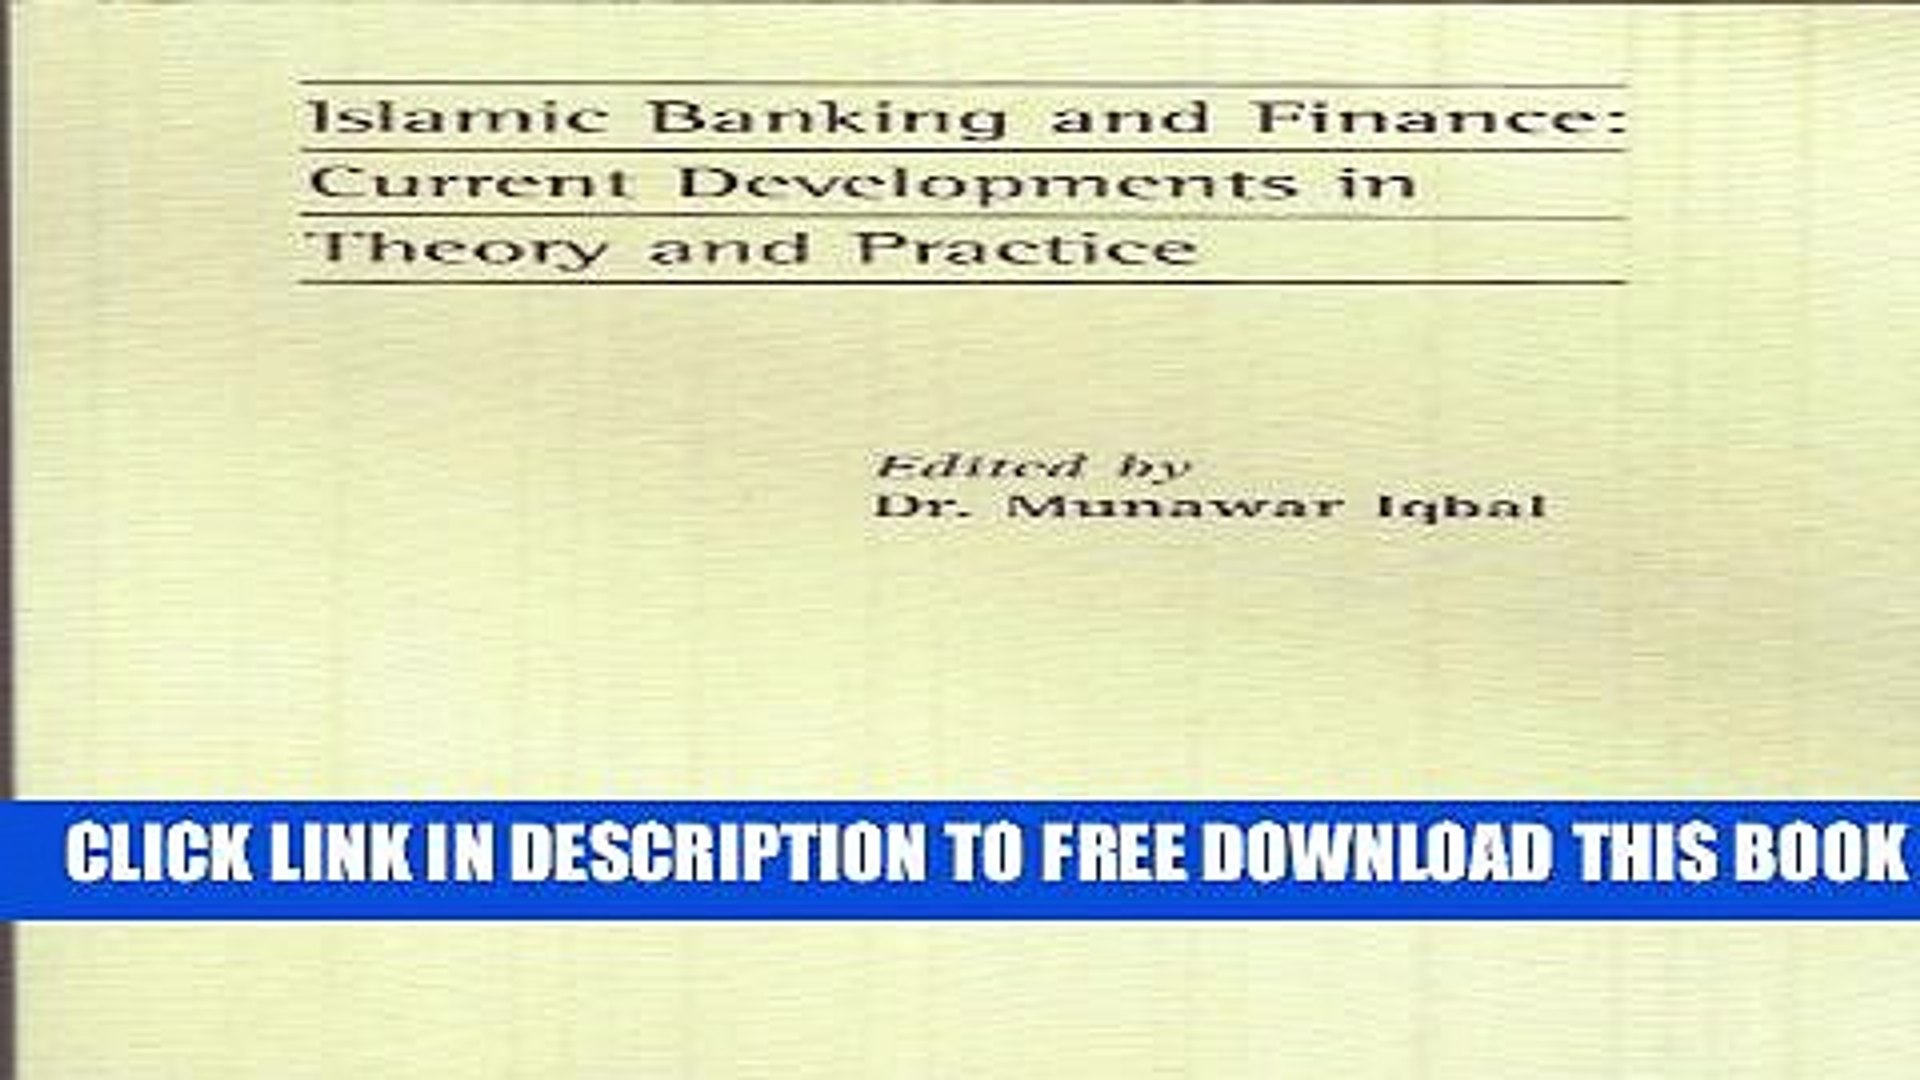 [PDF] Islamic Banking and Finance: Current Developments in Theory and Practice Popular Online